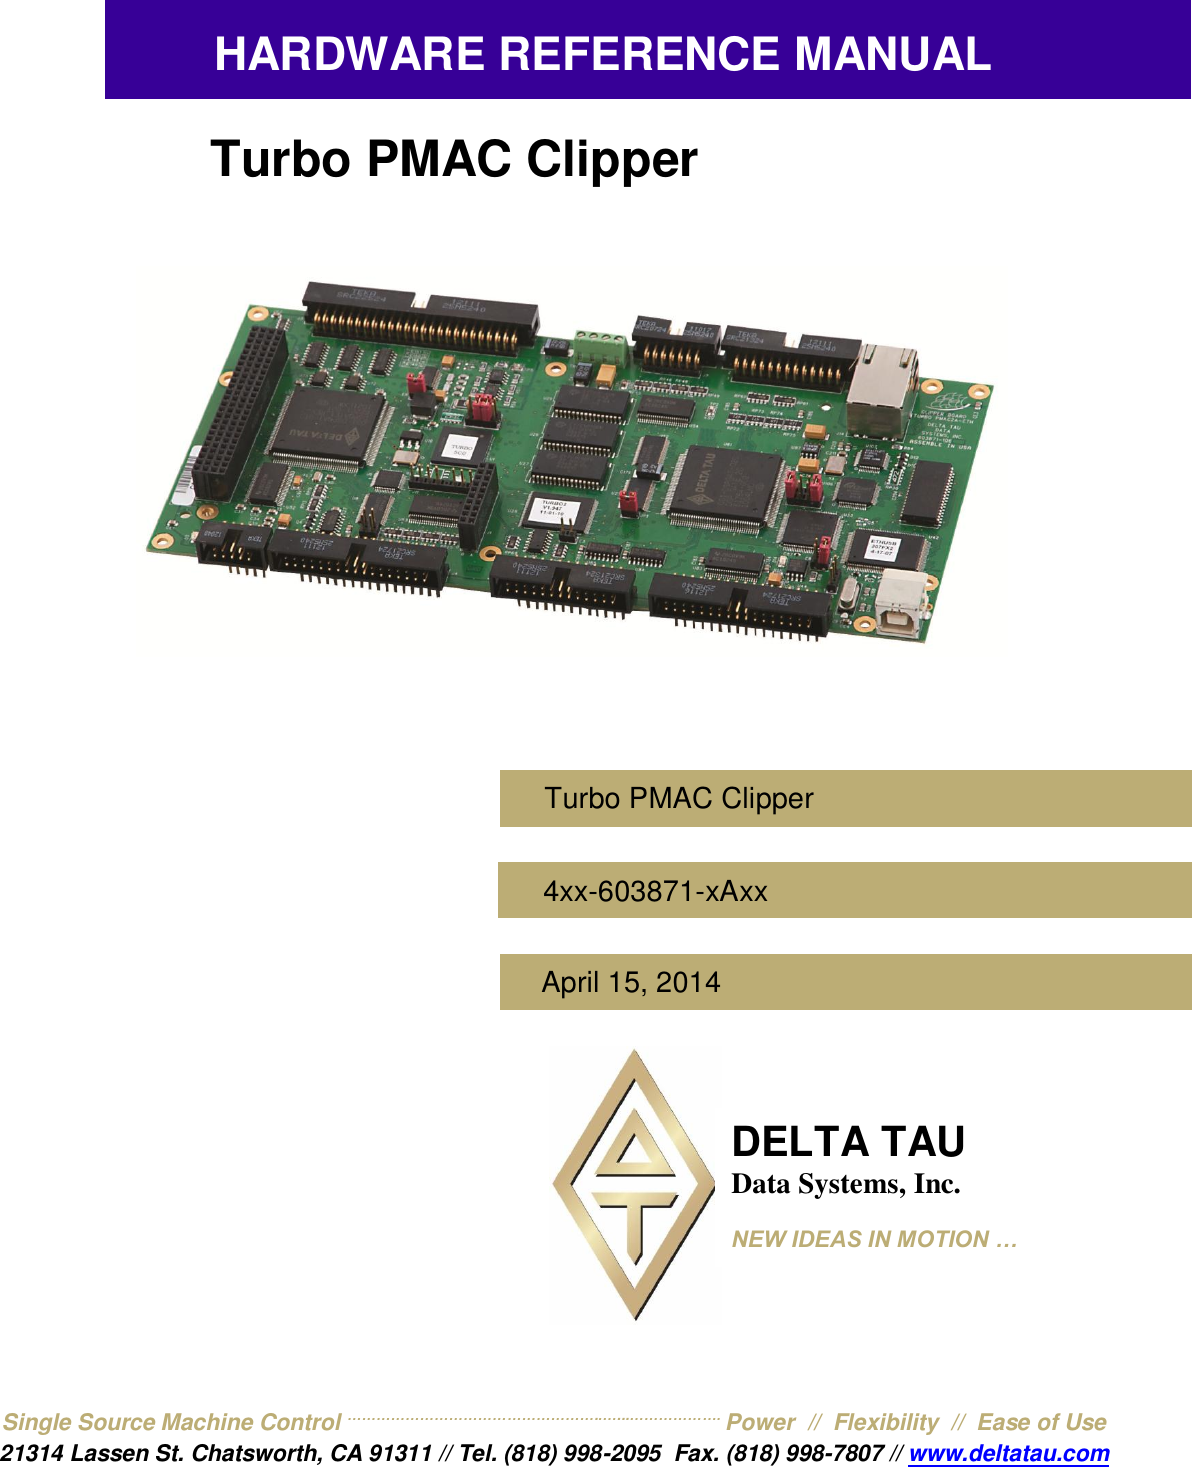 Delta Tau Turbo Clipper Users Manual Clippers An Overview Of Clipping Circuits Electronic